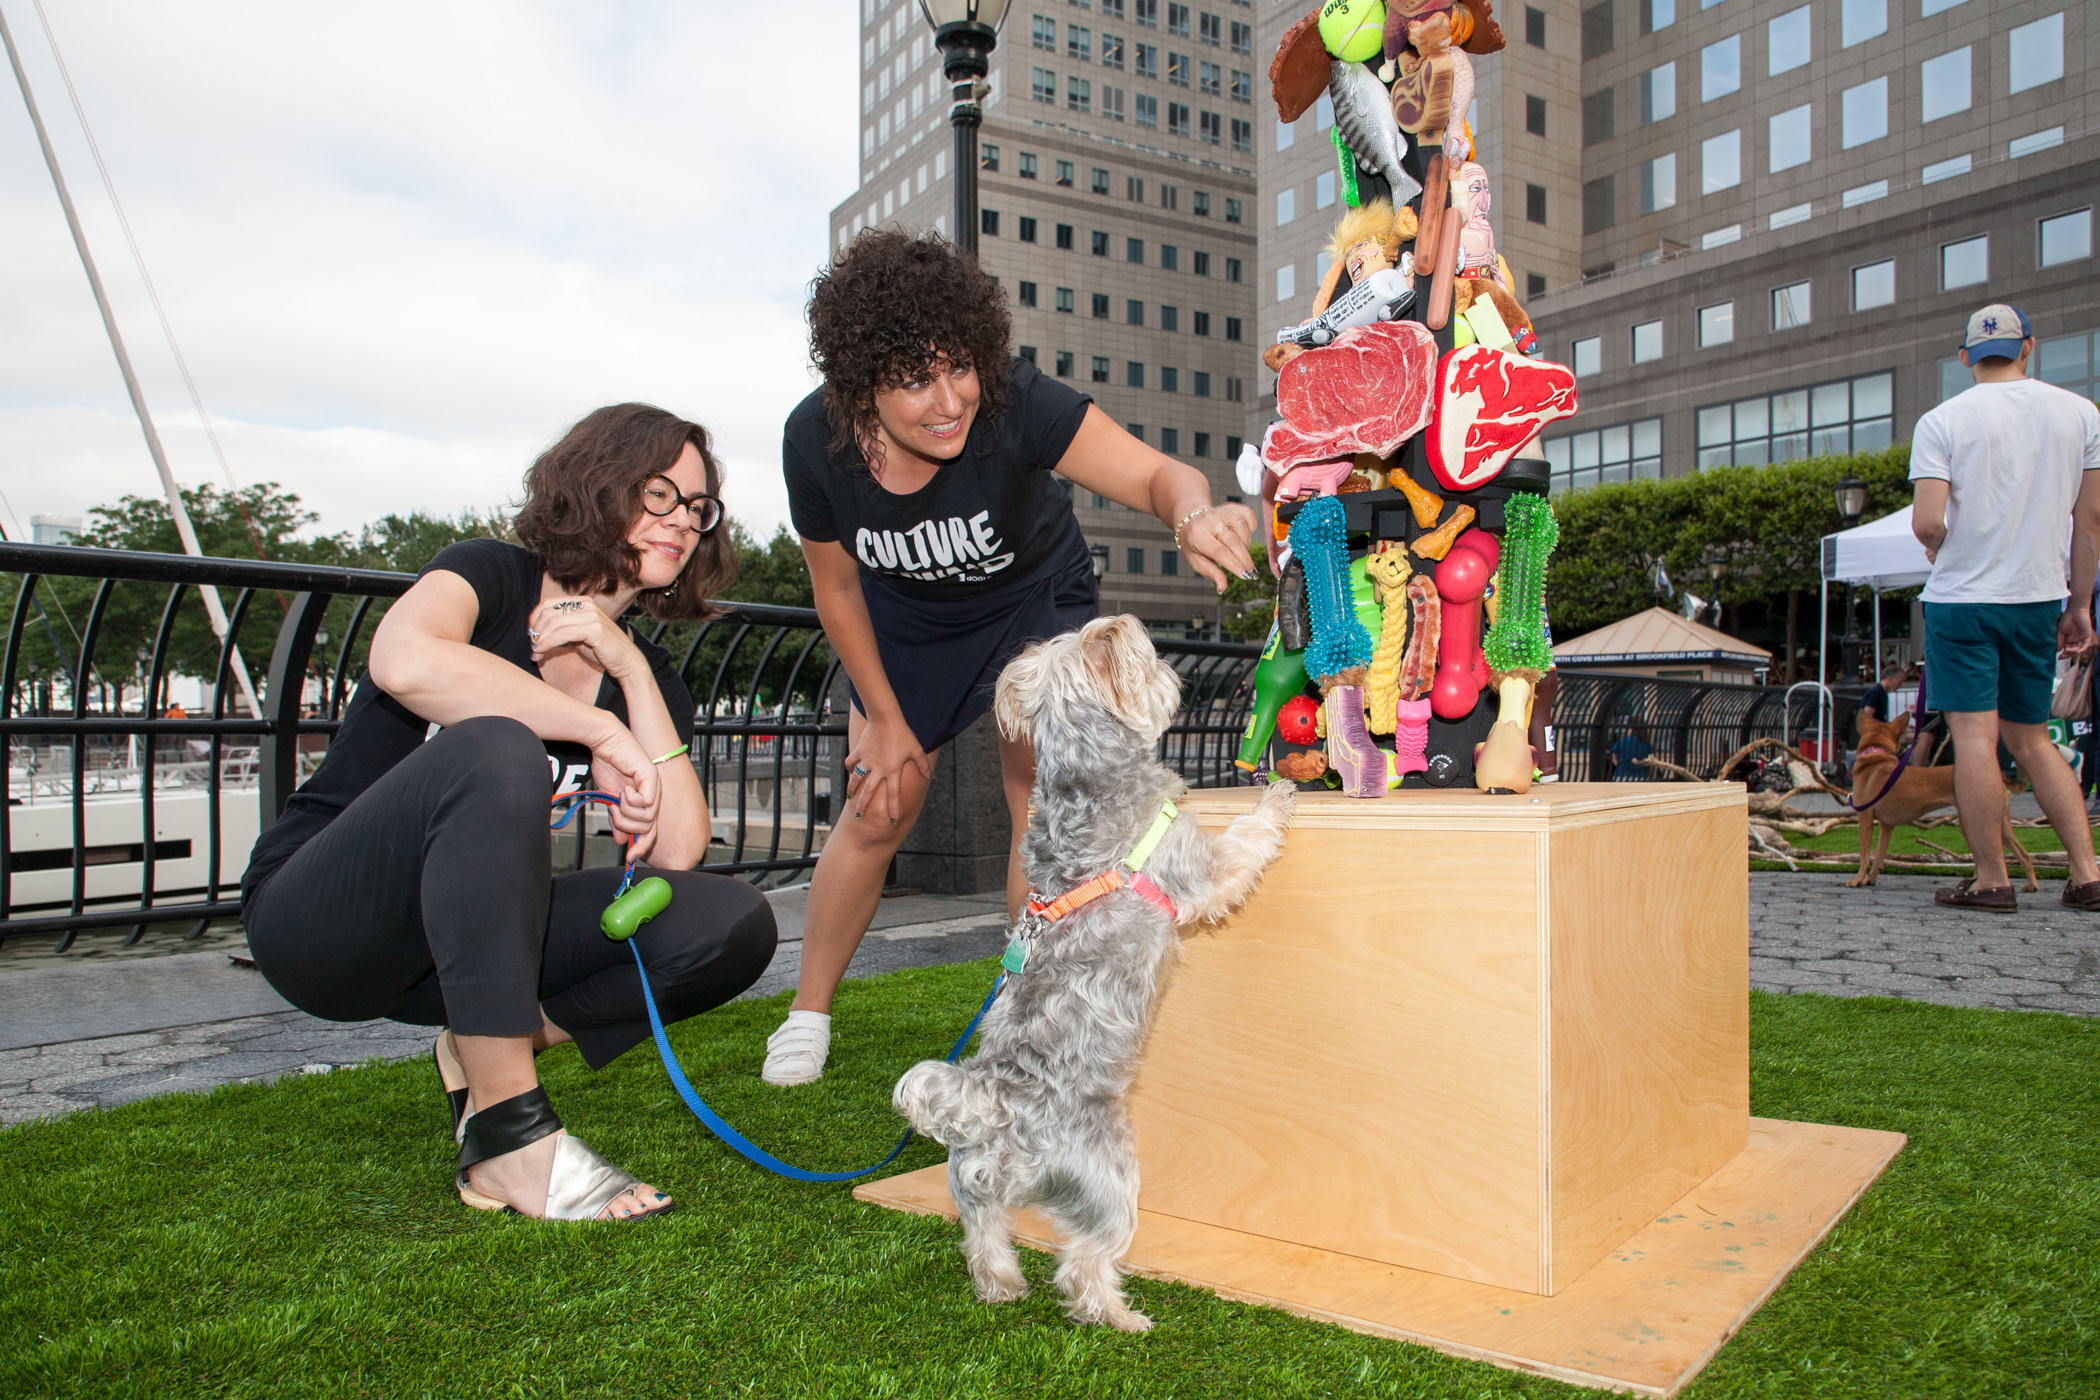 """dOGUMENTA team with """"Any Dog Can Be A Guide Dog If You Don't Care Where You're Going"""" by Tibi Tibi Neuspiel at Brookfield Place in New York City."""